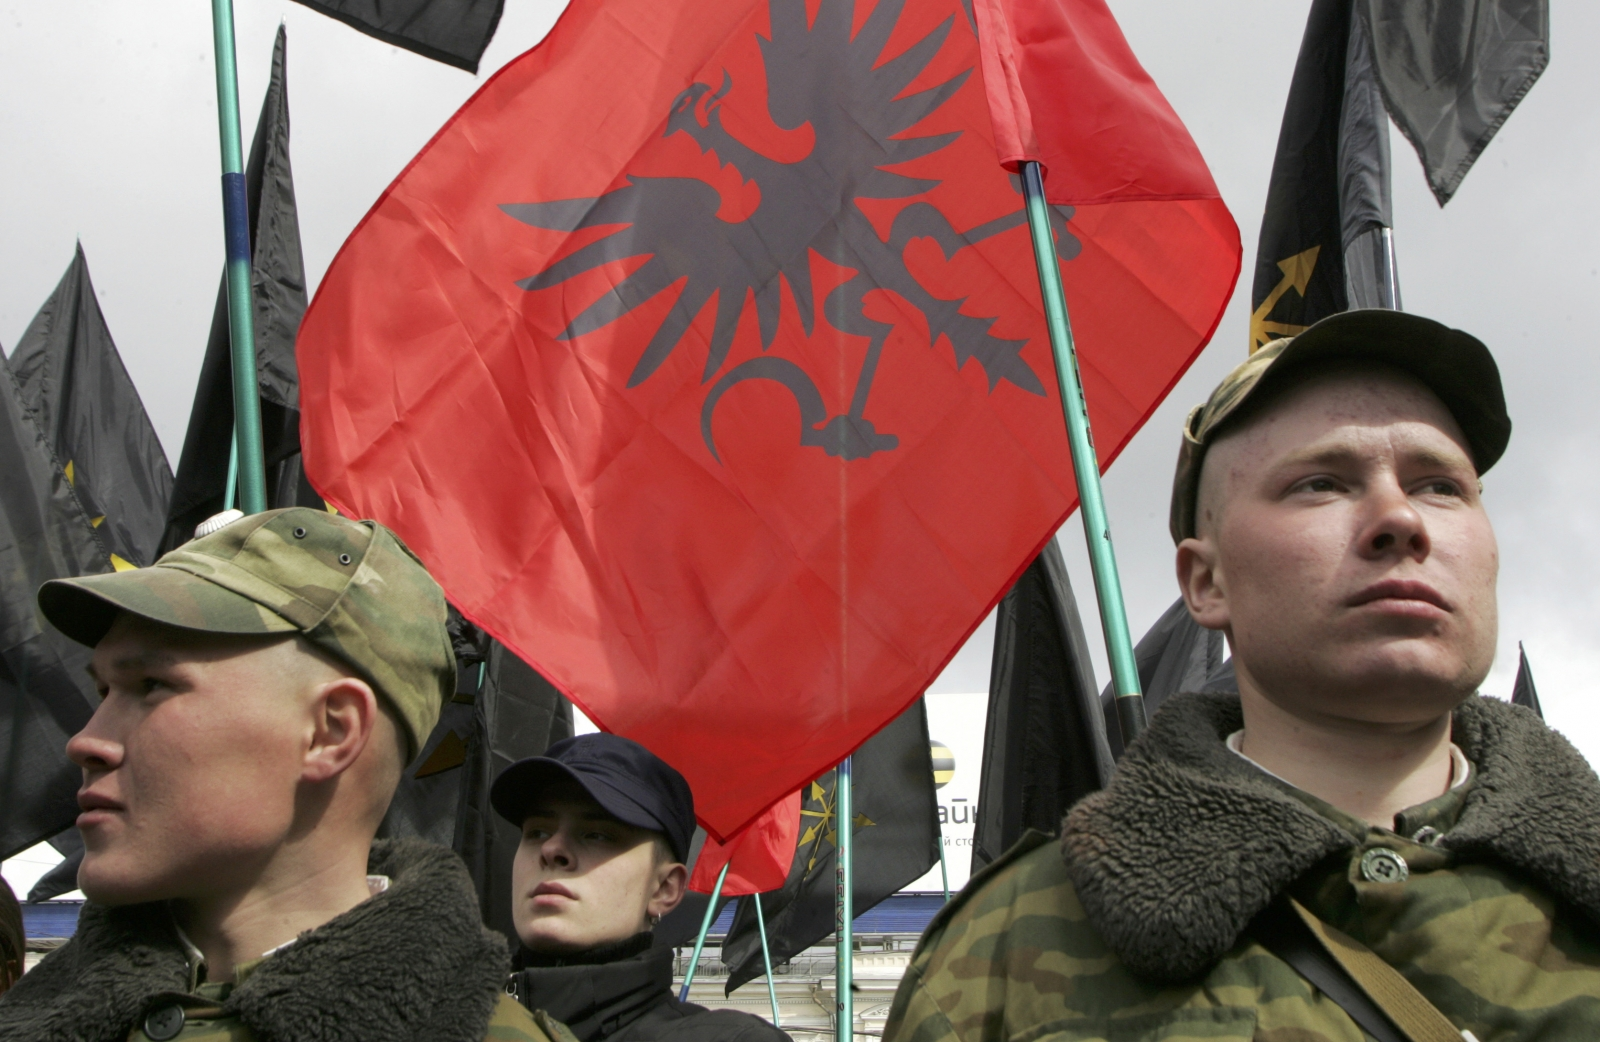 Soldiers guard a rally of Drugin's youth group the Eurasian Youth Union. (Reuters)